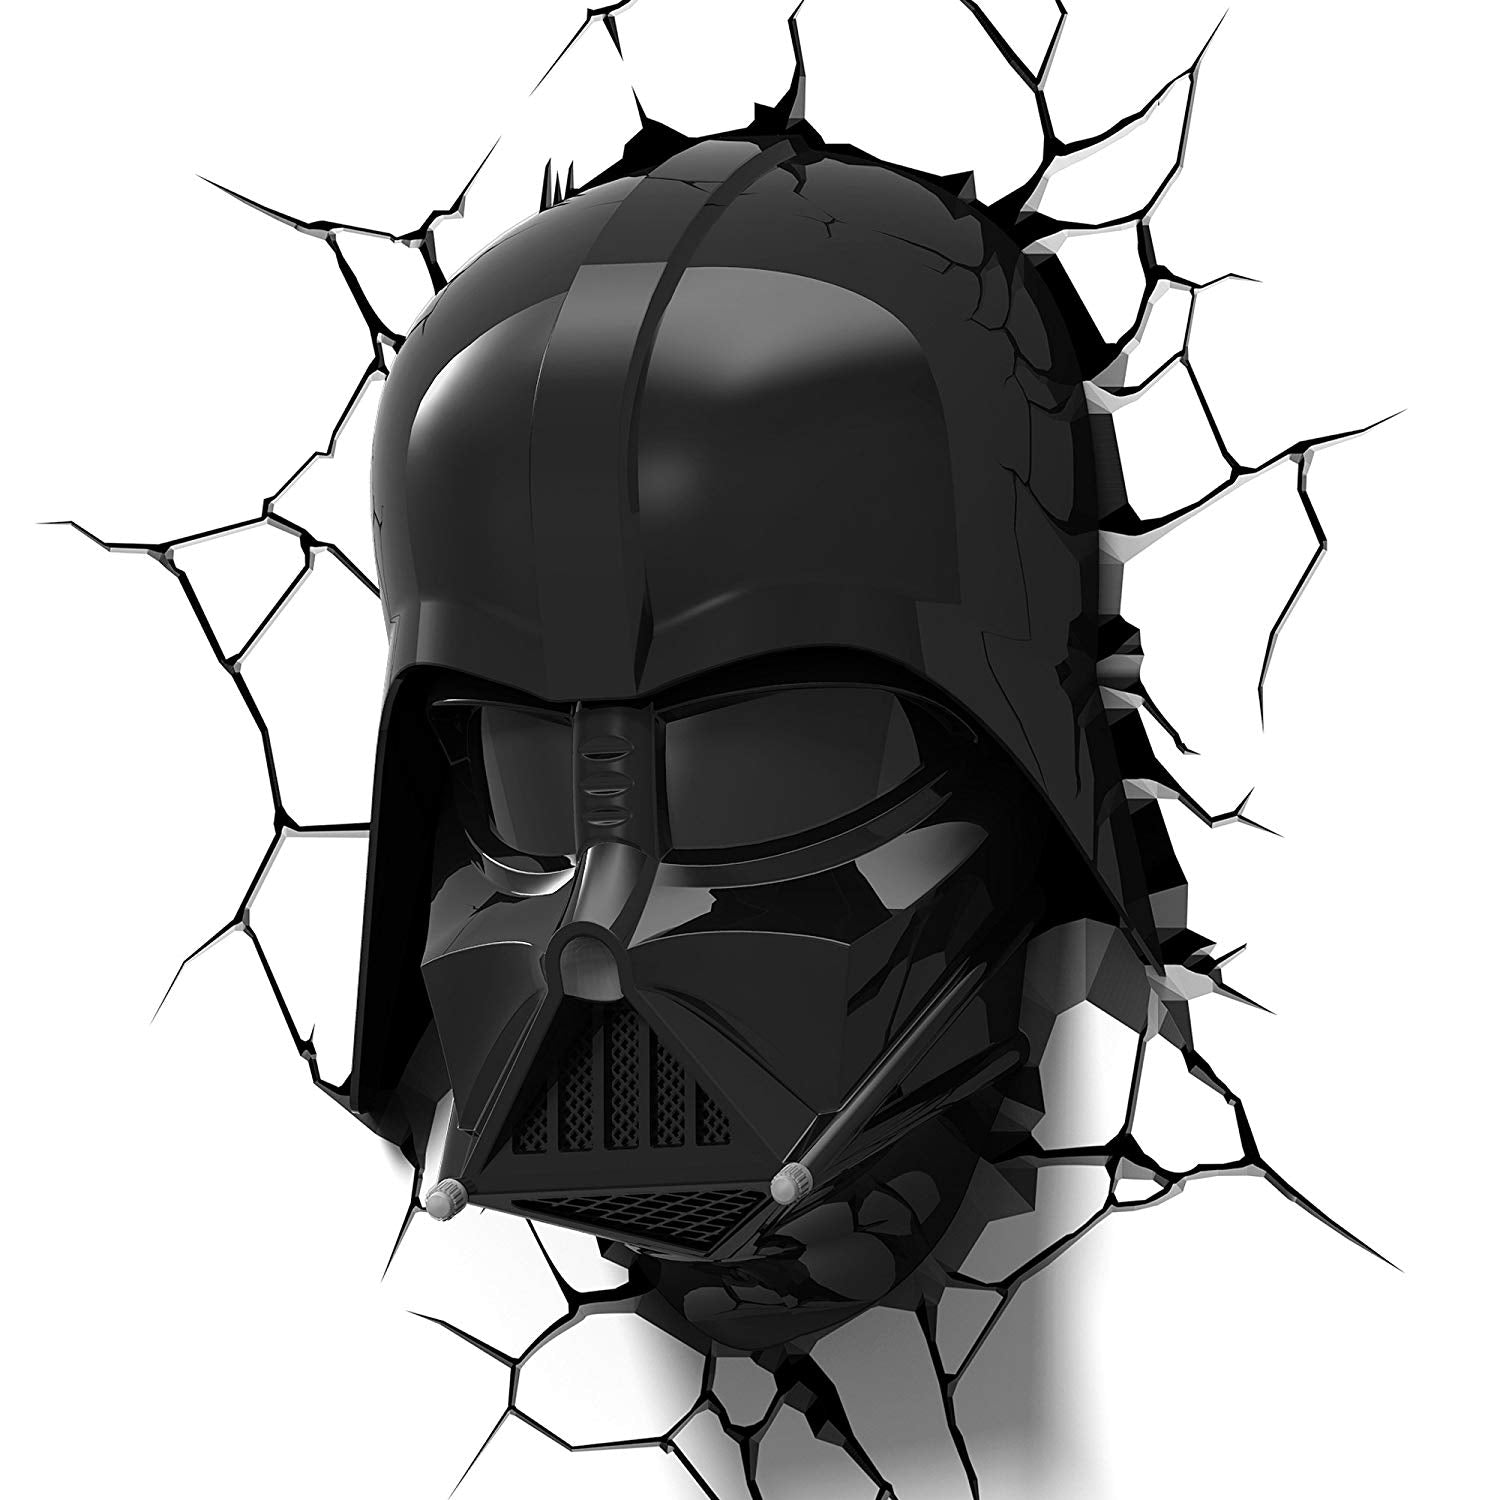 Lampada - STAR WARS - DARTH VADER (Lampada 3D Light Fx)